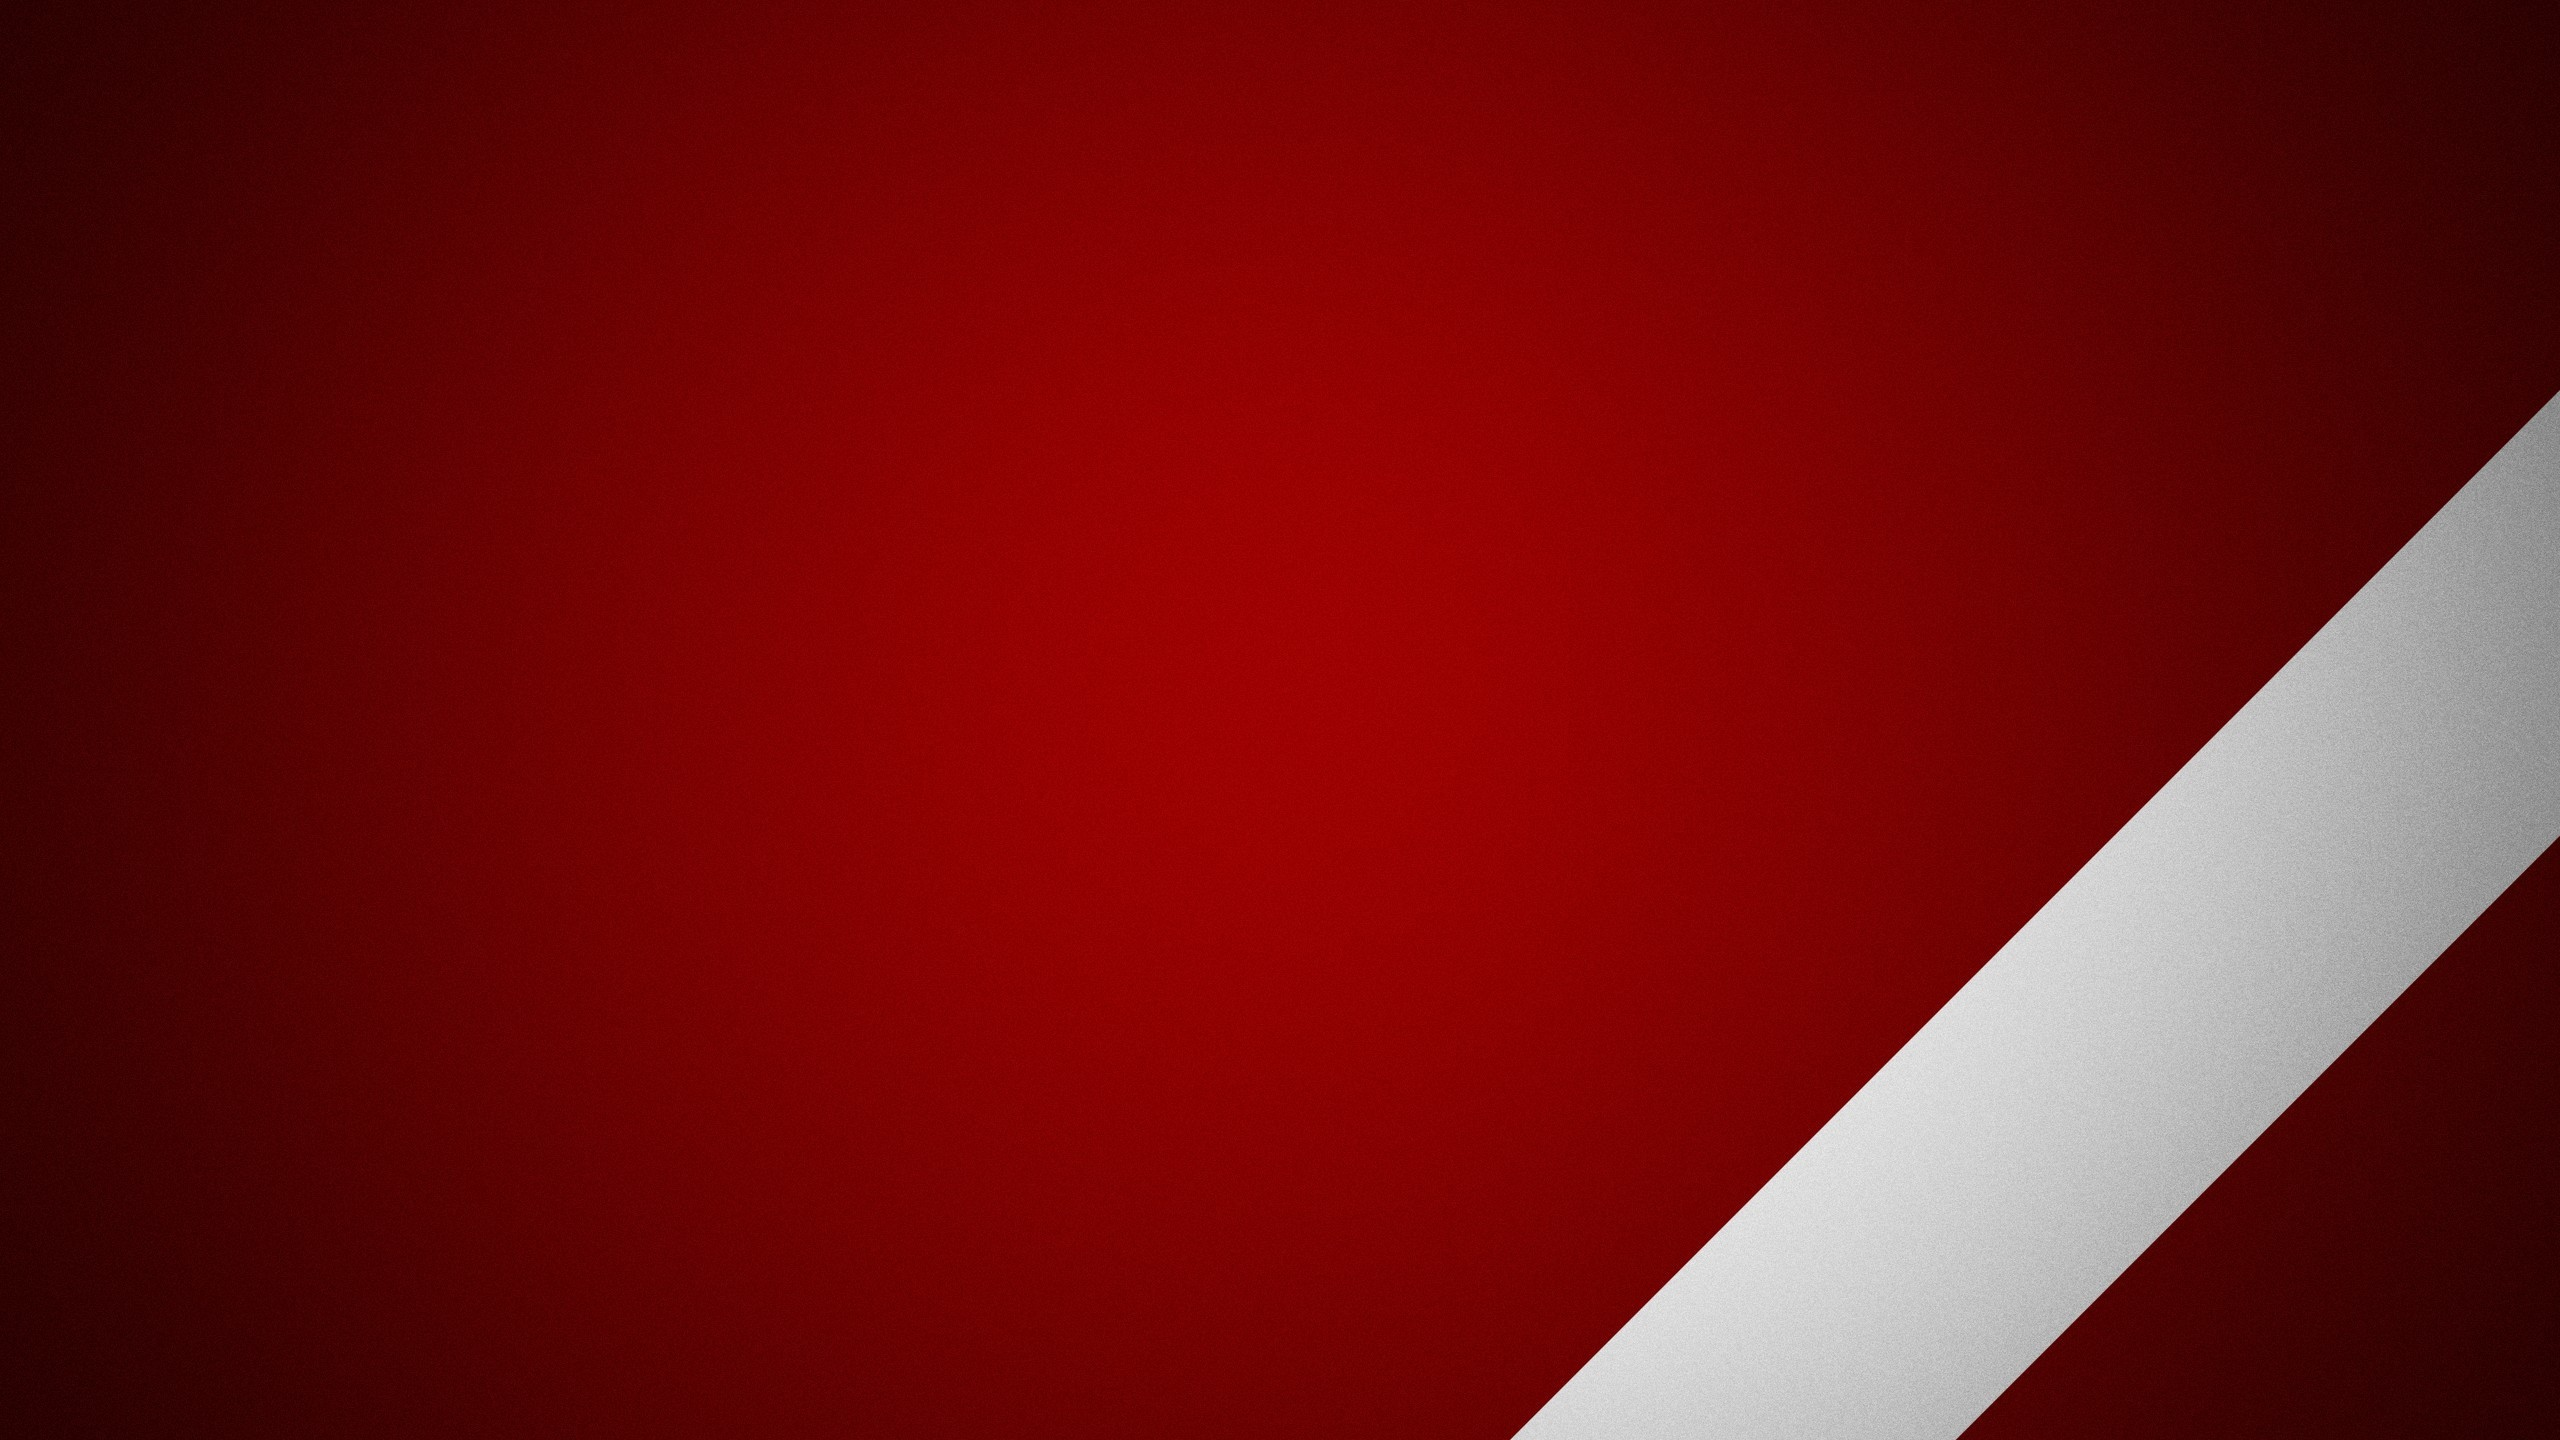 Red and White Backgrounds ·① WallpaperTag